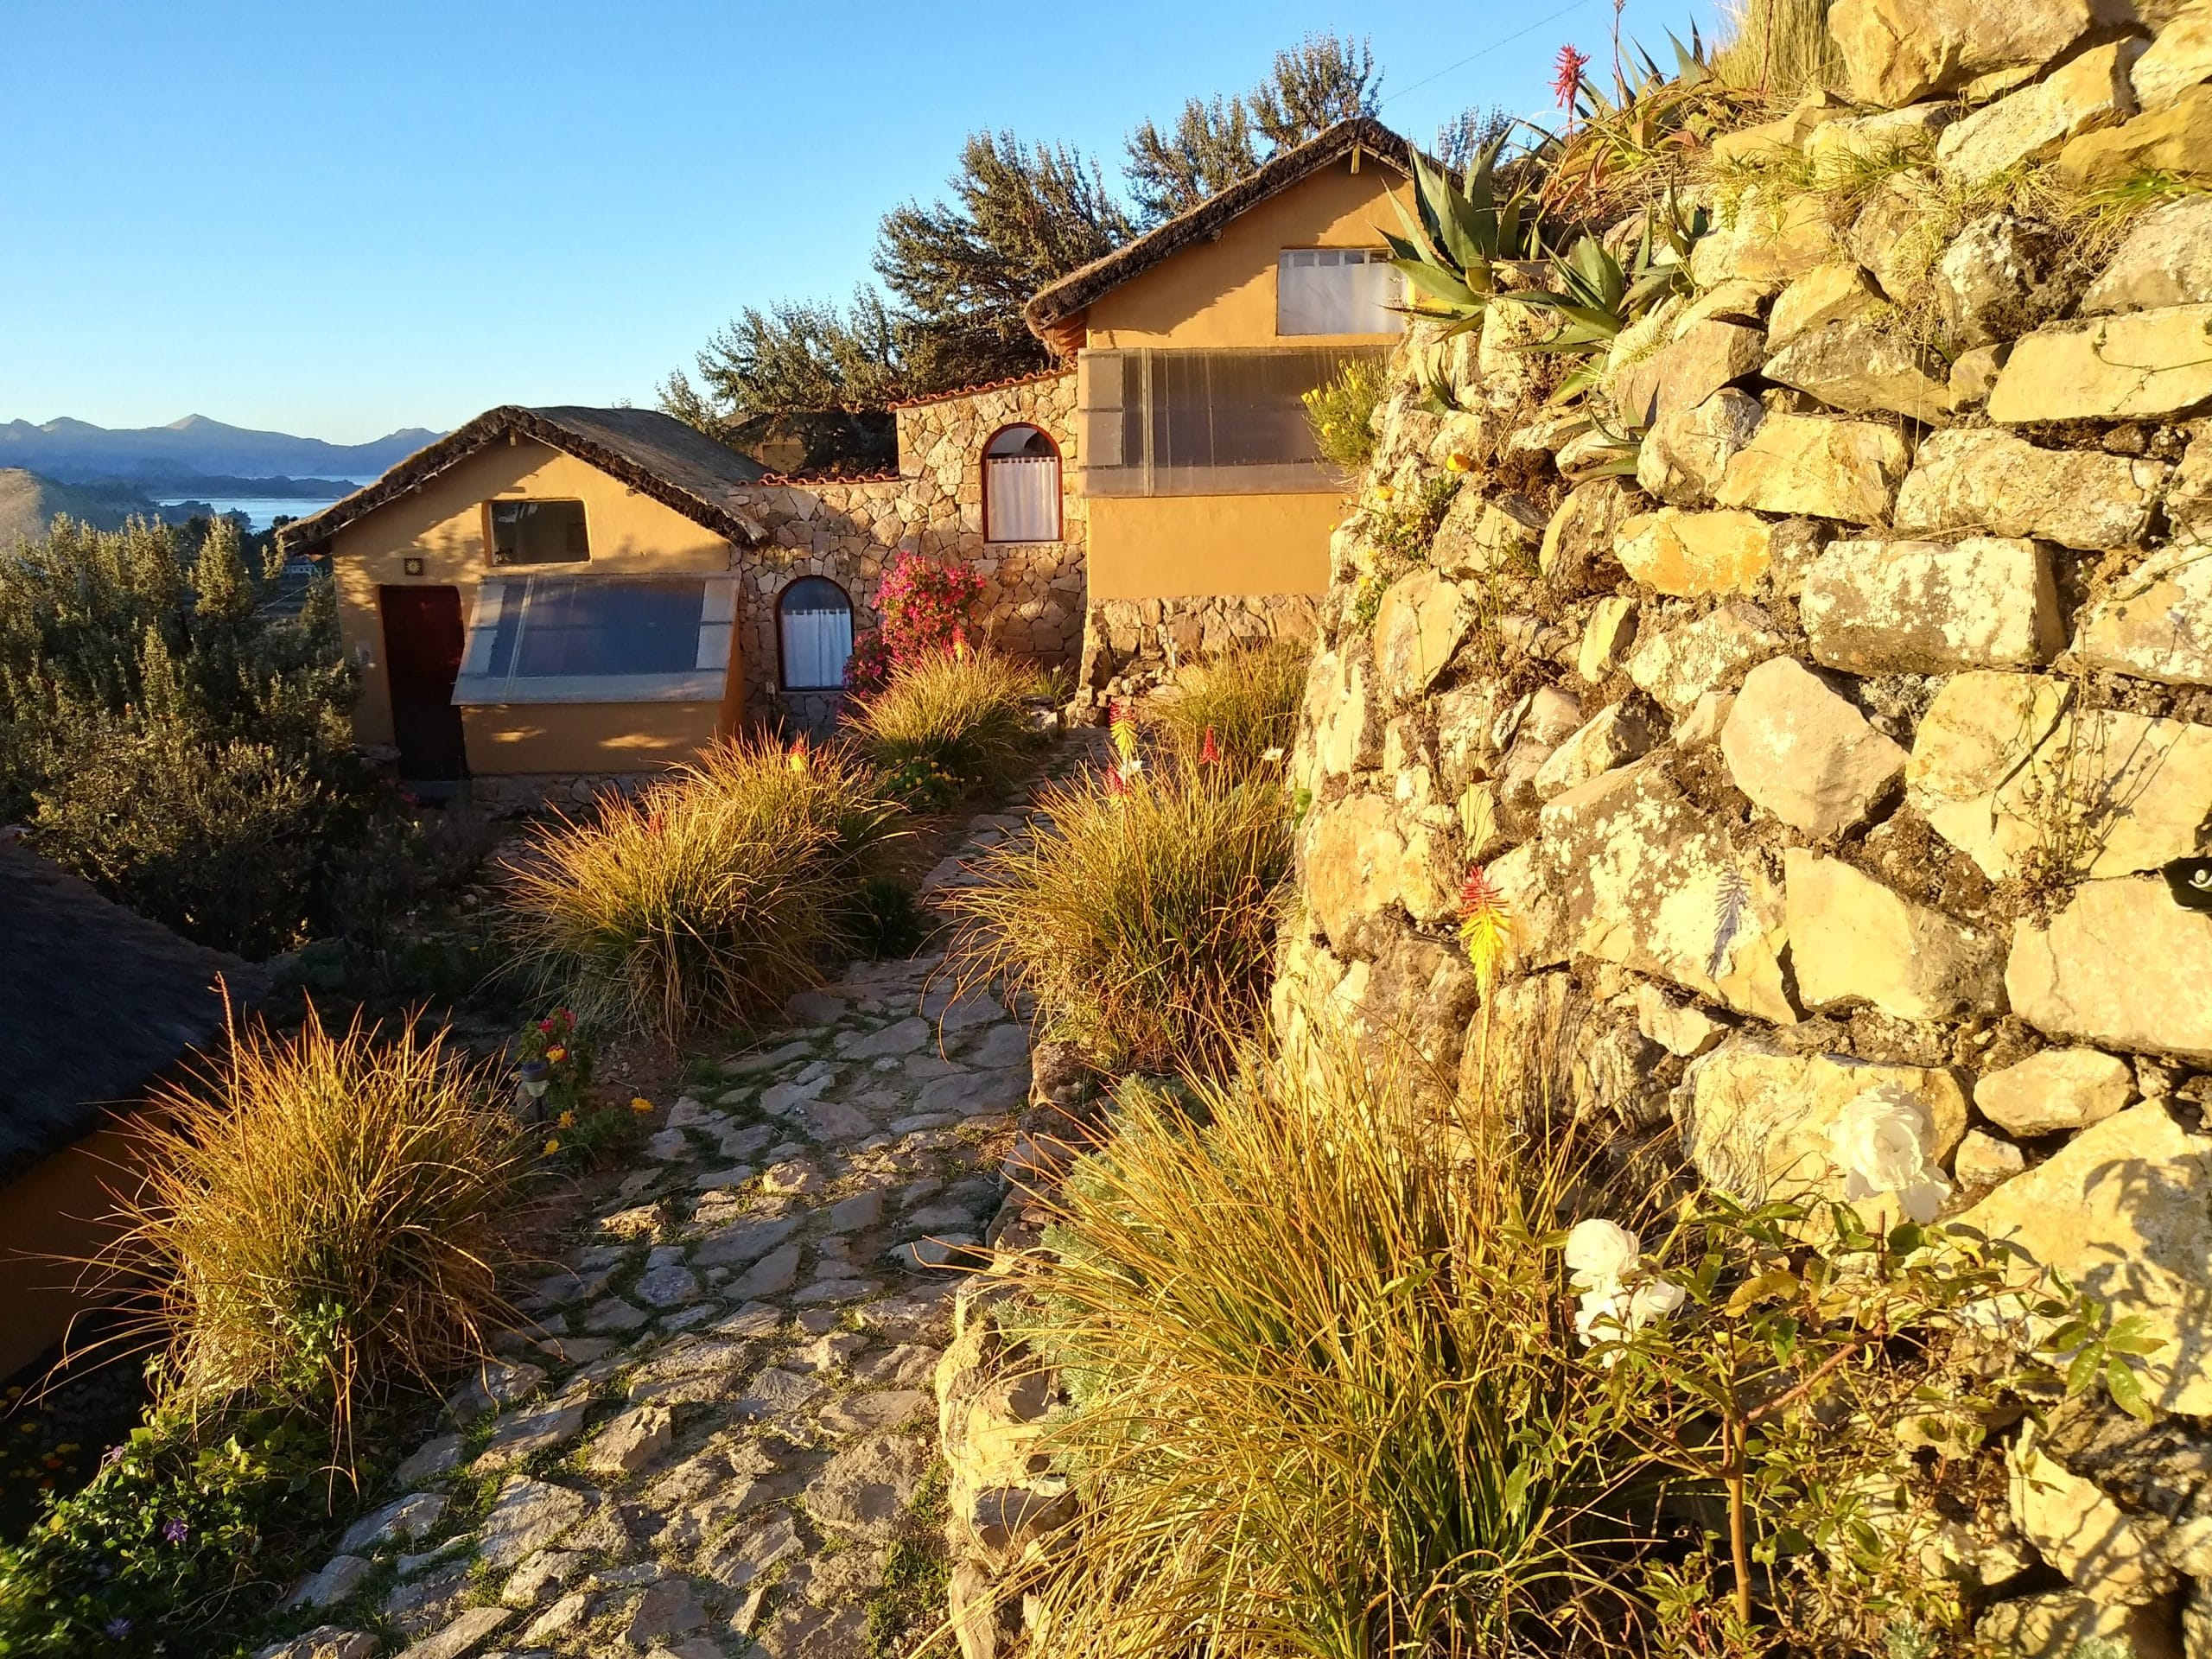 Estancia Eco-Lodge